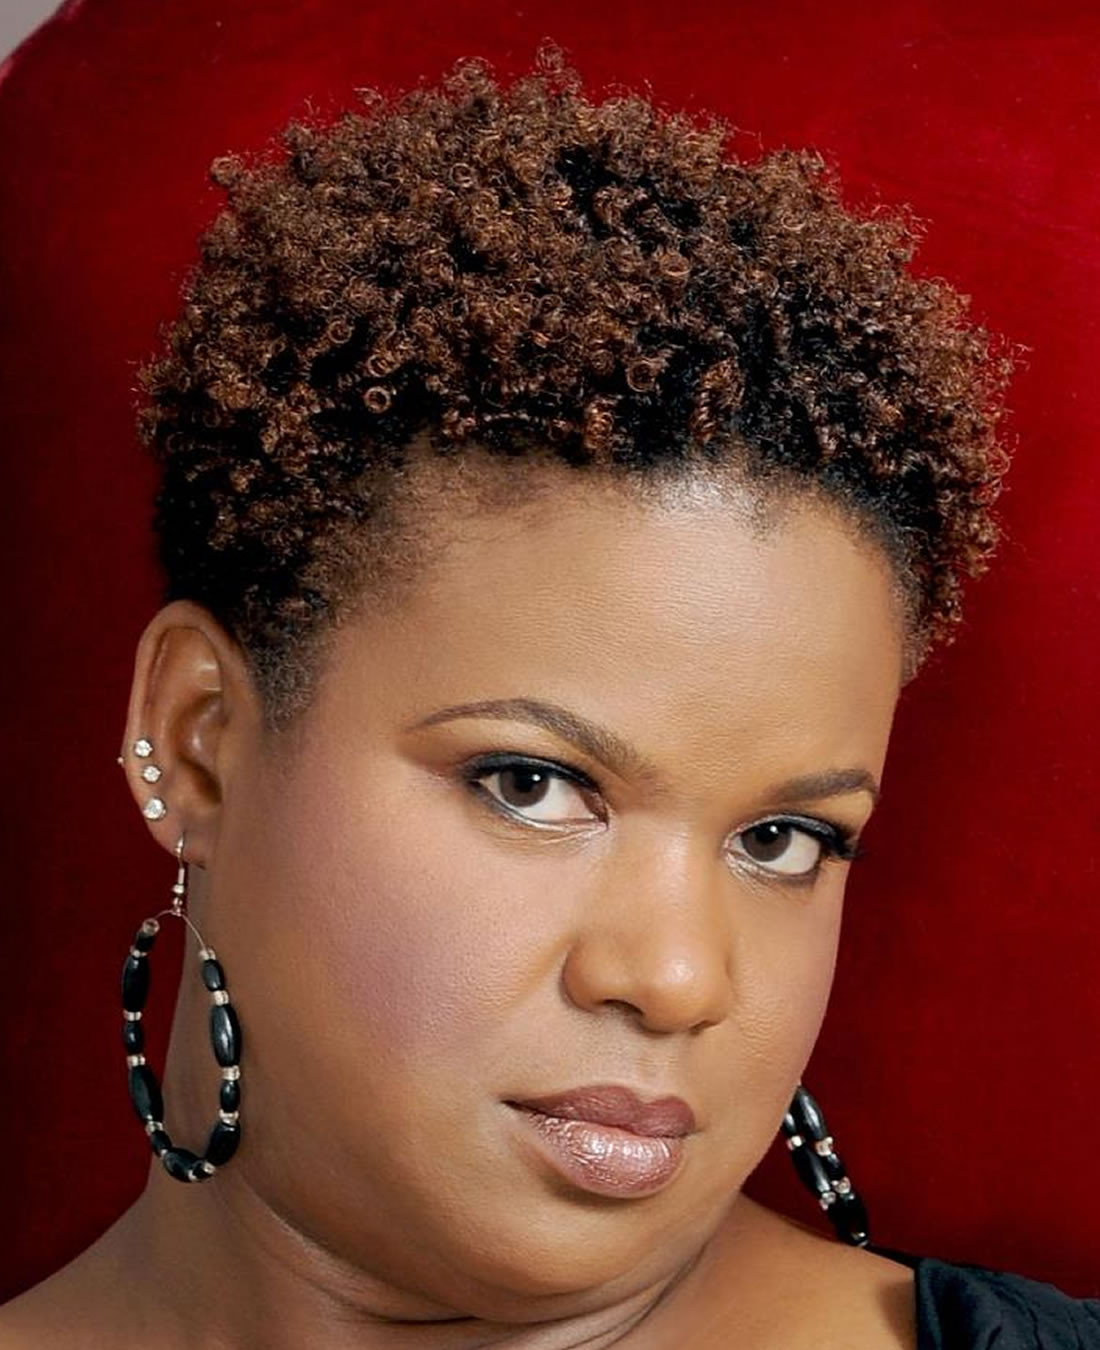 Best ideas about Short African American Hairstyles 2019 . Save or Pin Short African American Hairstyles for Round Faces 2018 Now.